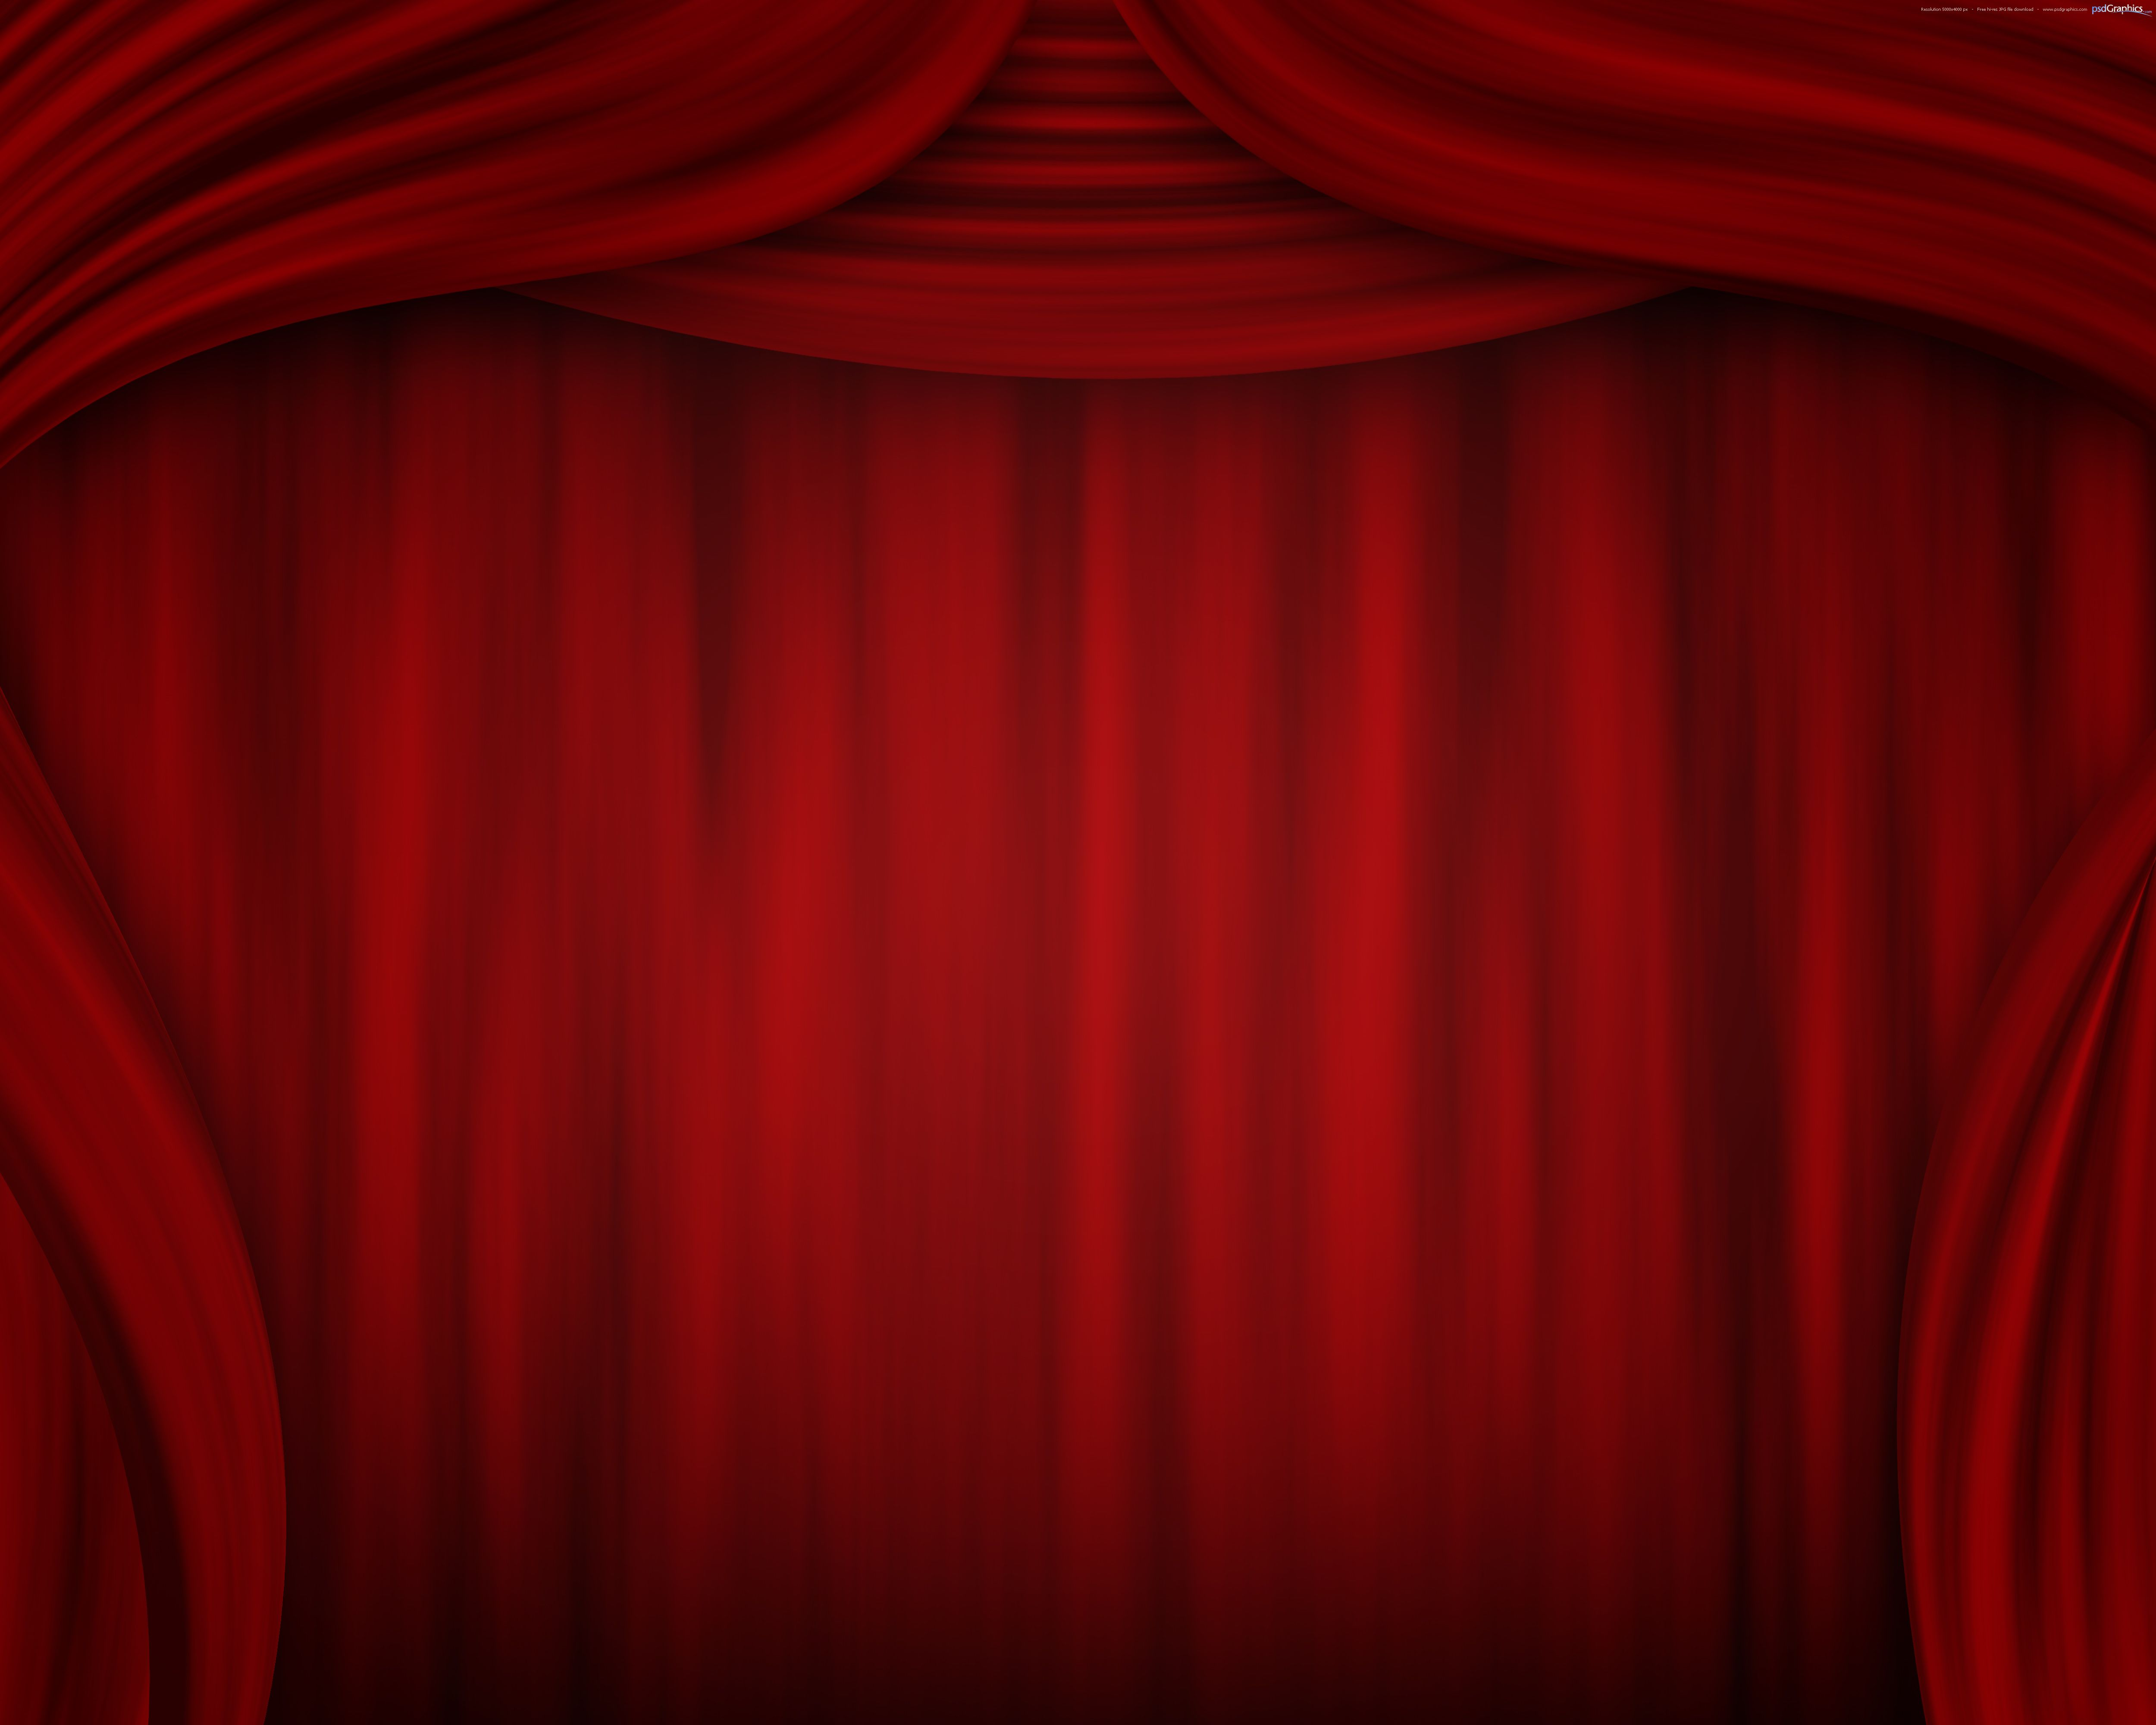 Free coloring pages of stage curtains - Our Family Has Been Committed To Manufacturing The Highest Quality Theatre Curtains And Theatrical Drapery